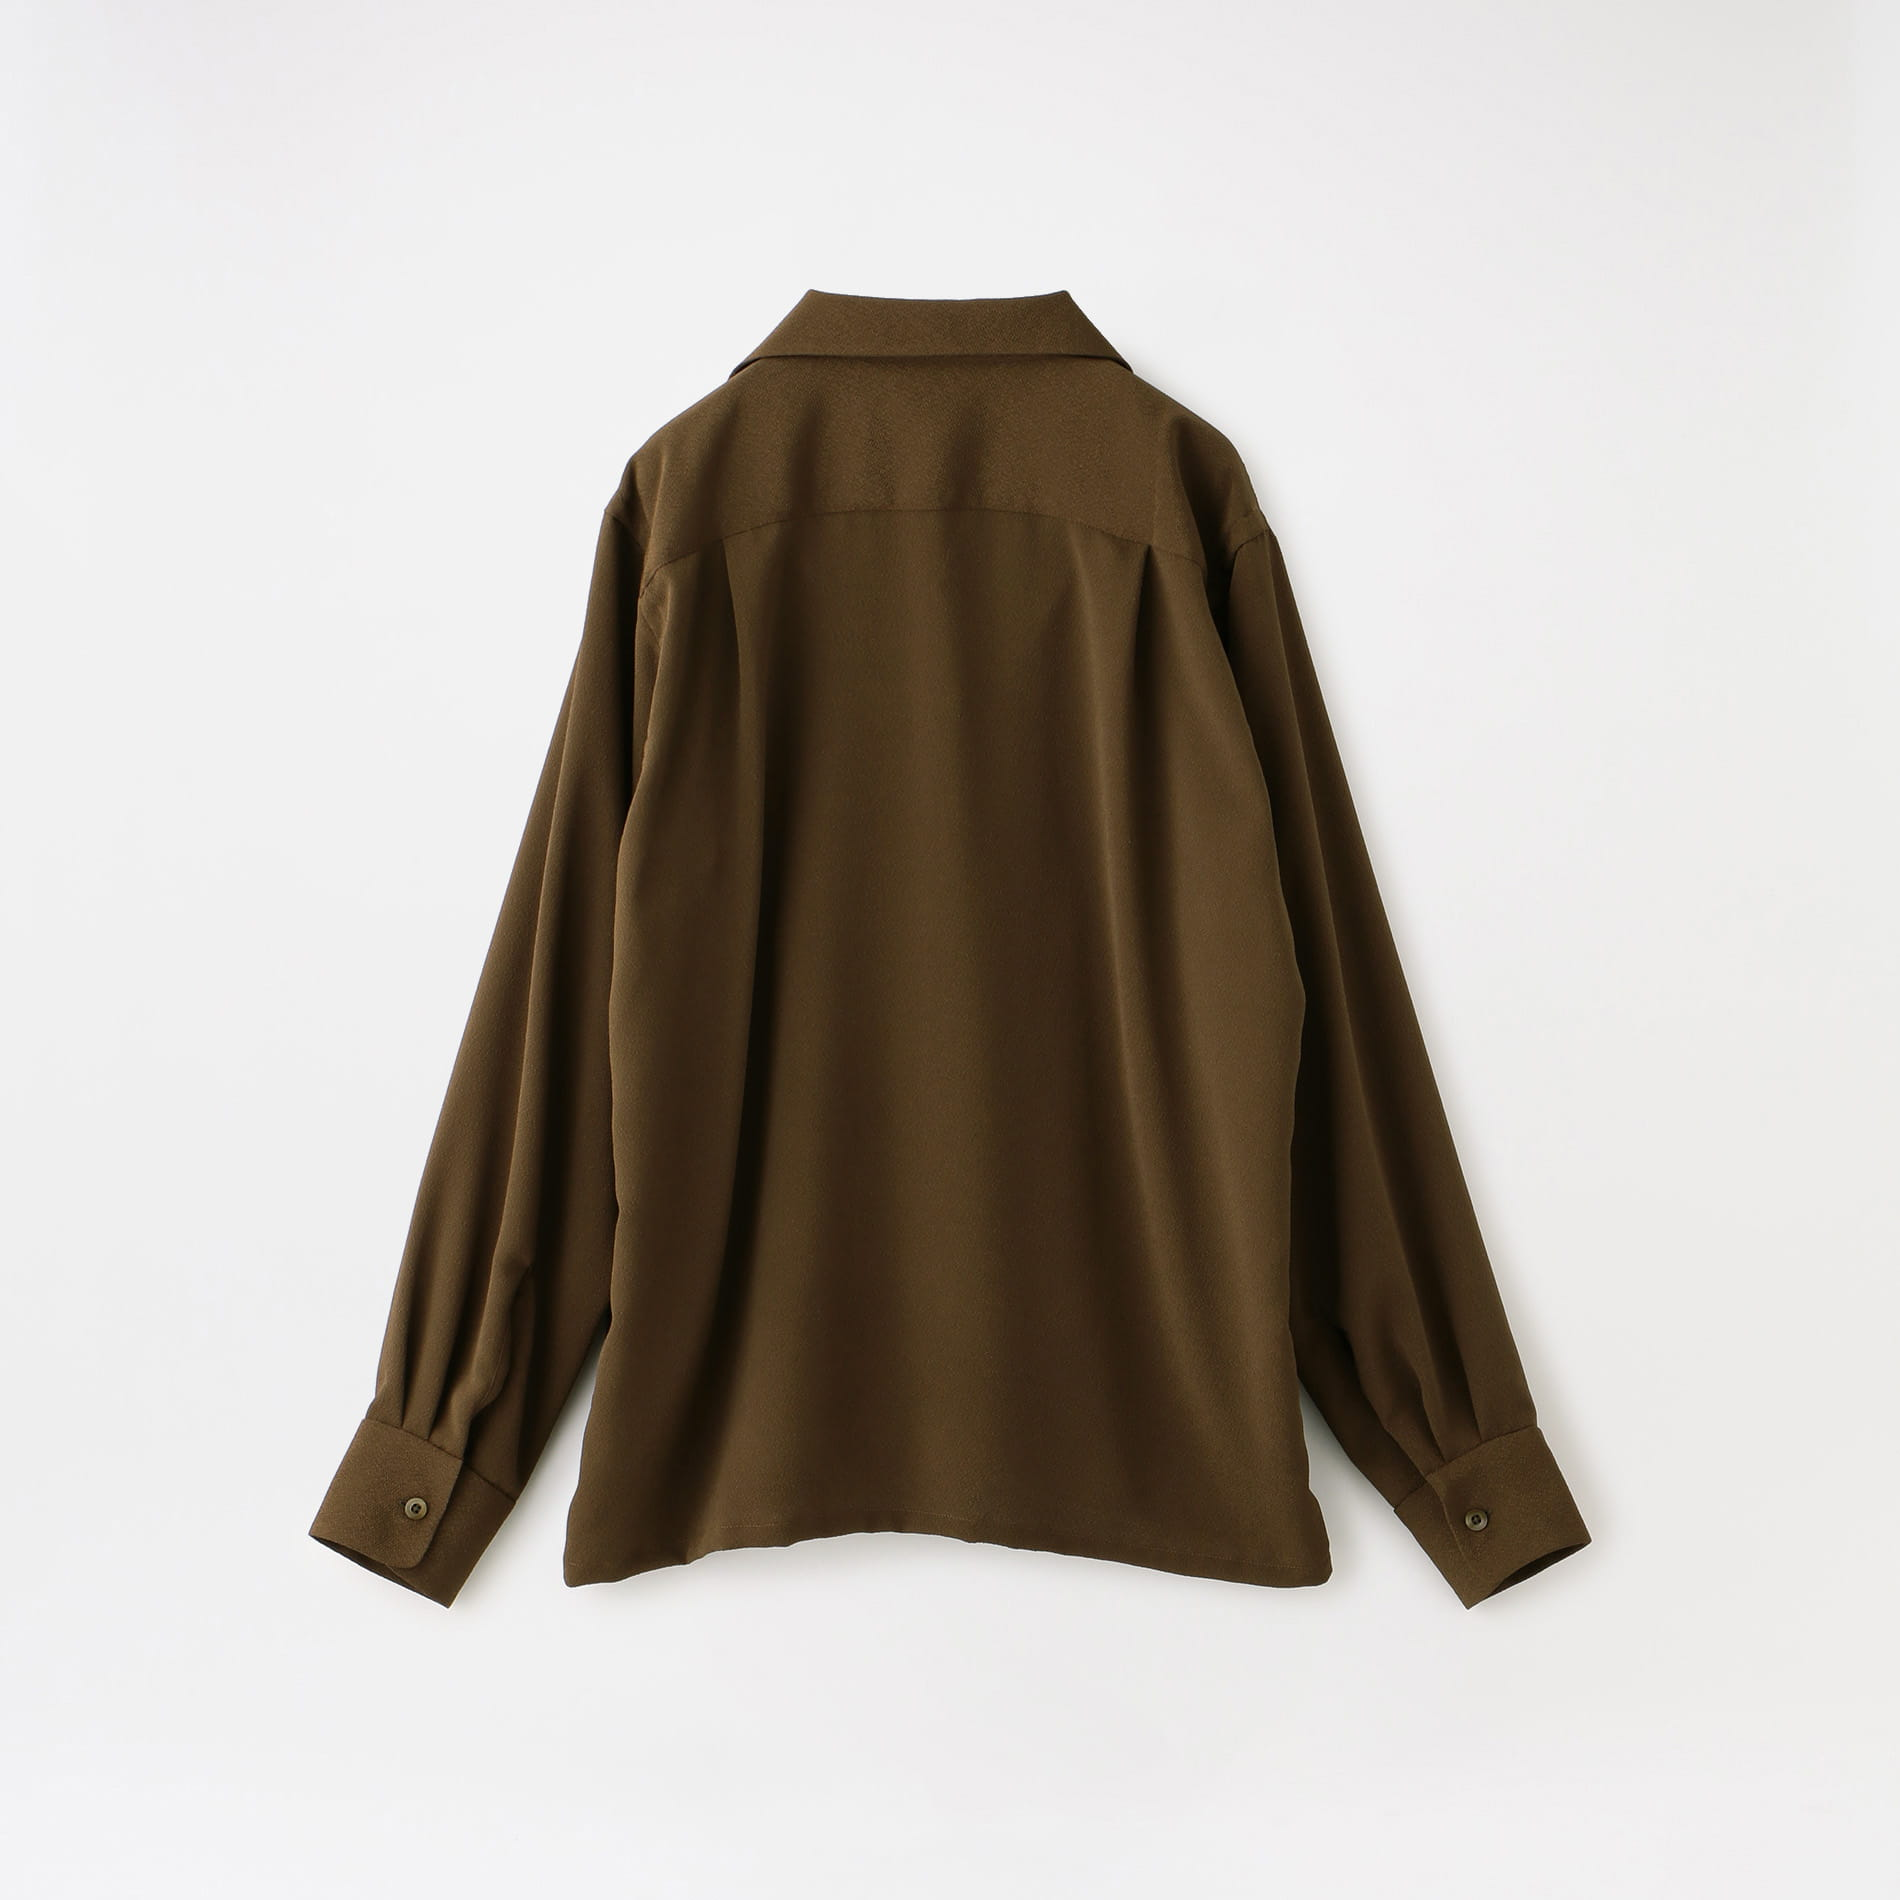 【South2 West8】MEN One-up Shirt - Poly Crepe Cloth GL805